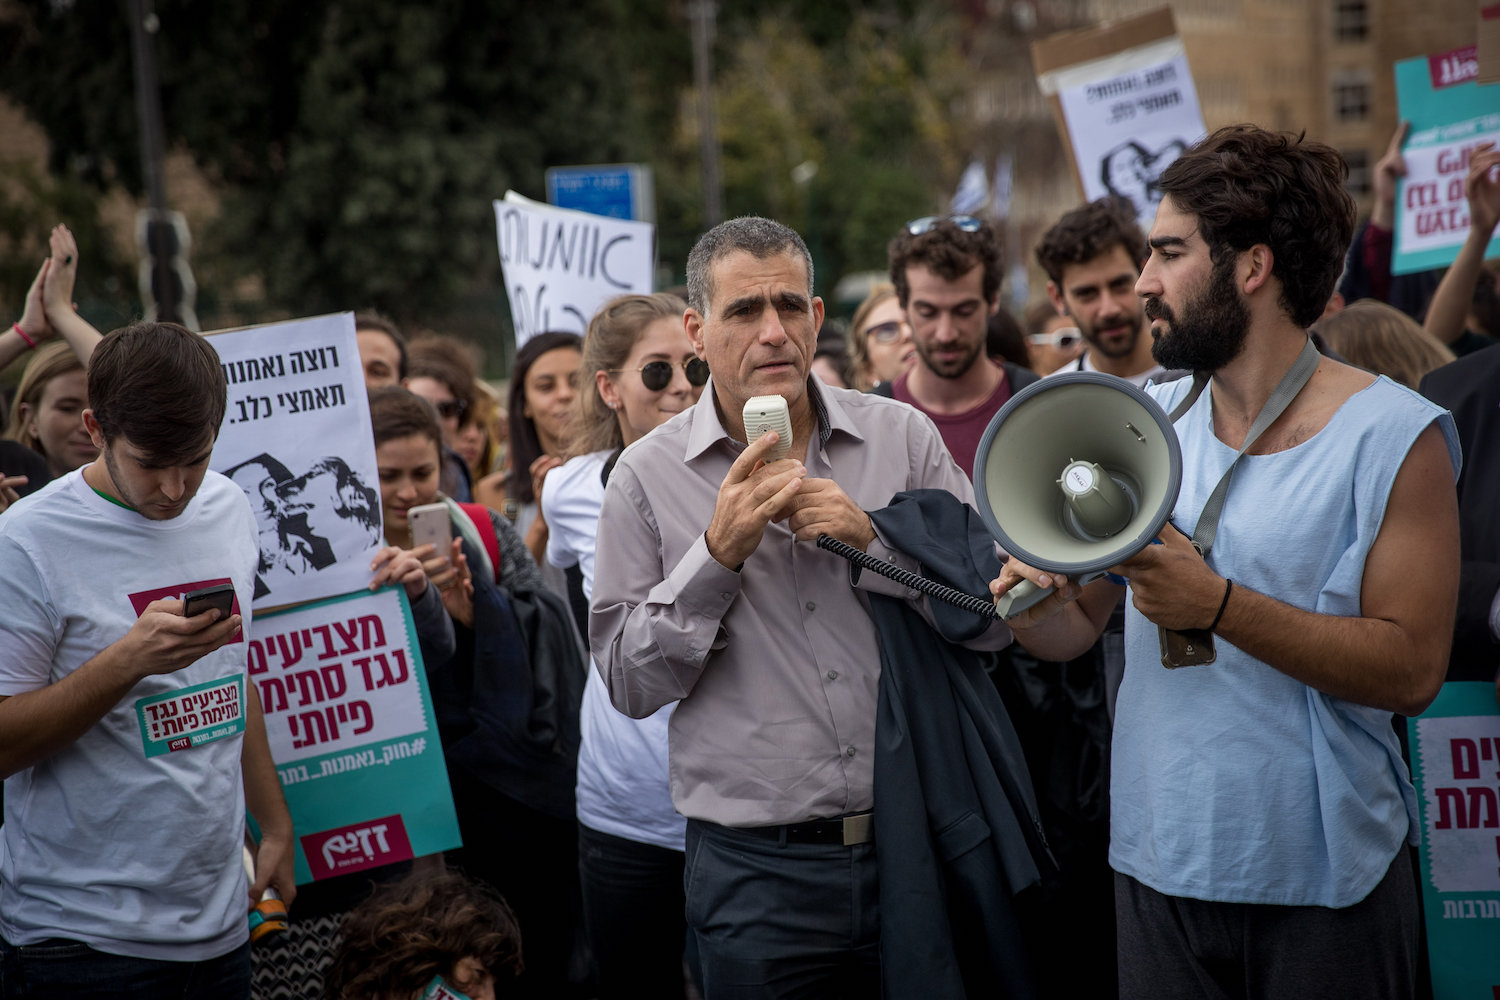 Mossi Raz speaks at a protest against the 'Culture Loyalty Bill' proposed by former Culture Minister Miri Regev, outside the Knesset, Jerusalem, November 26, 2018. (Yonatan Sindel/Flash90)